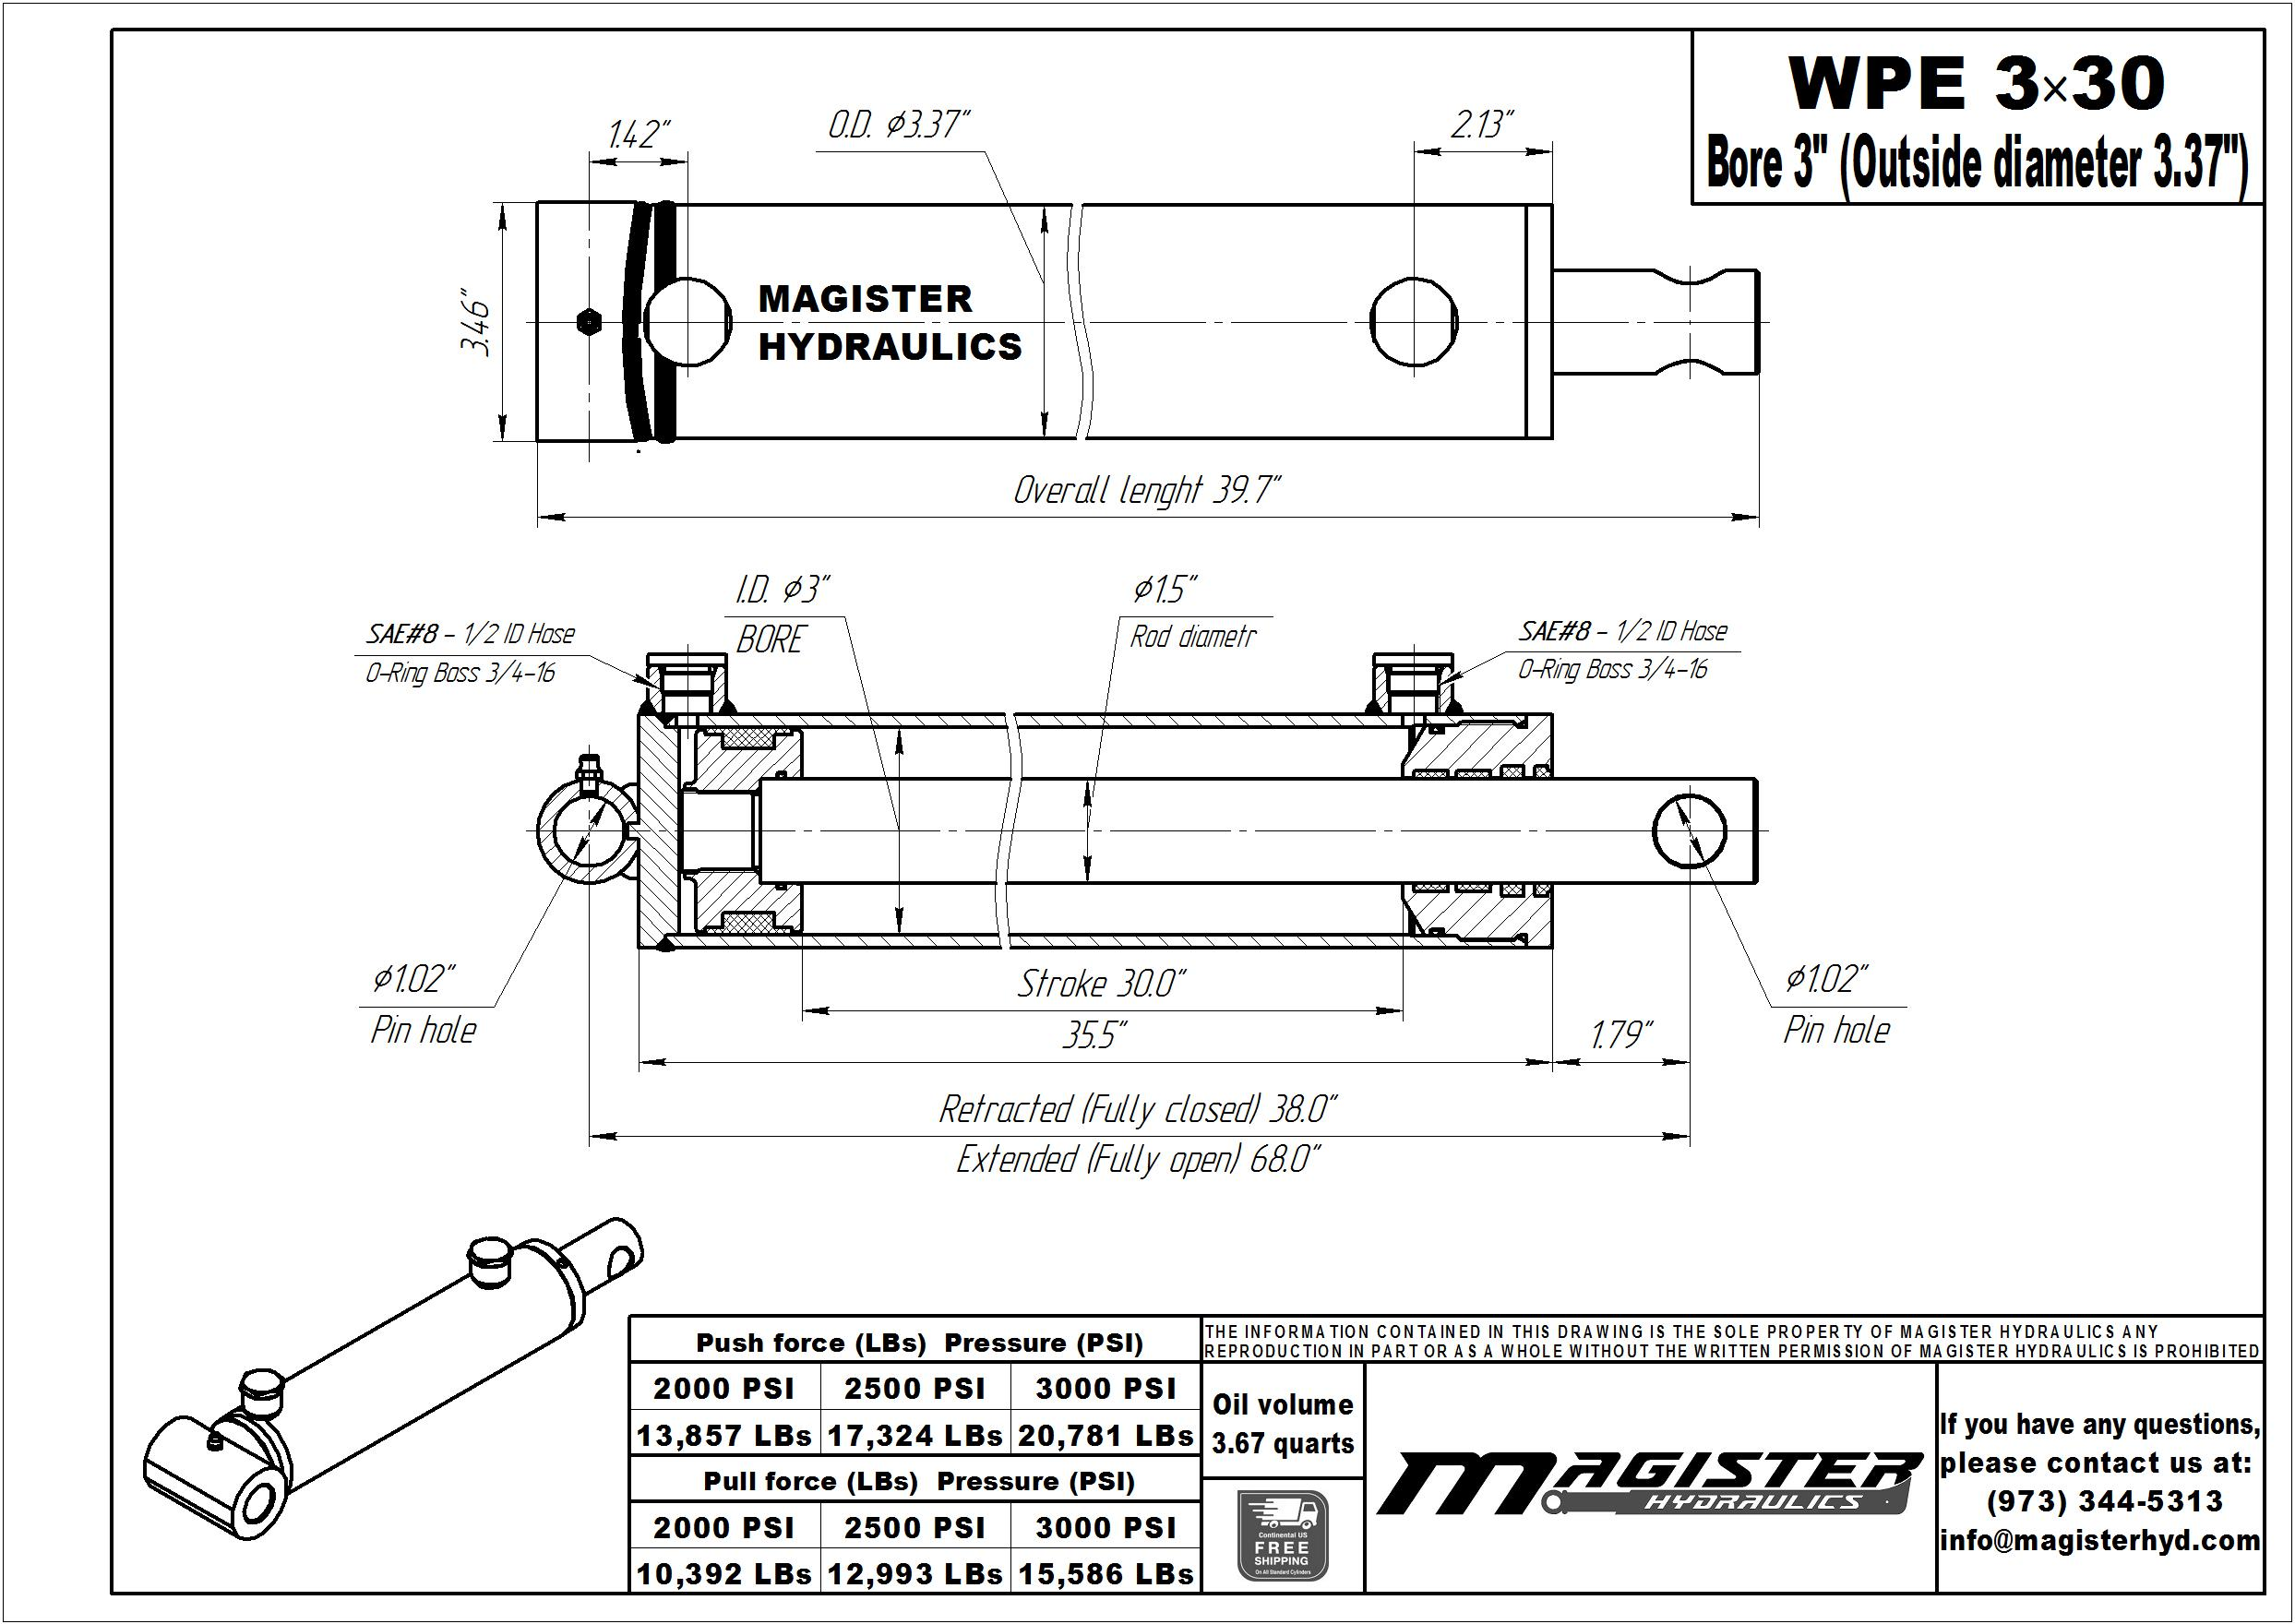 3 bore x 30 stroke hydraulic cylinder, welded pin eye double acting cylinder | Magister Hydraulics